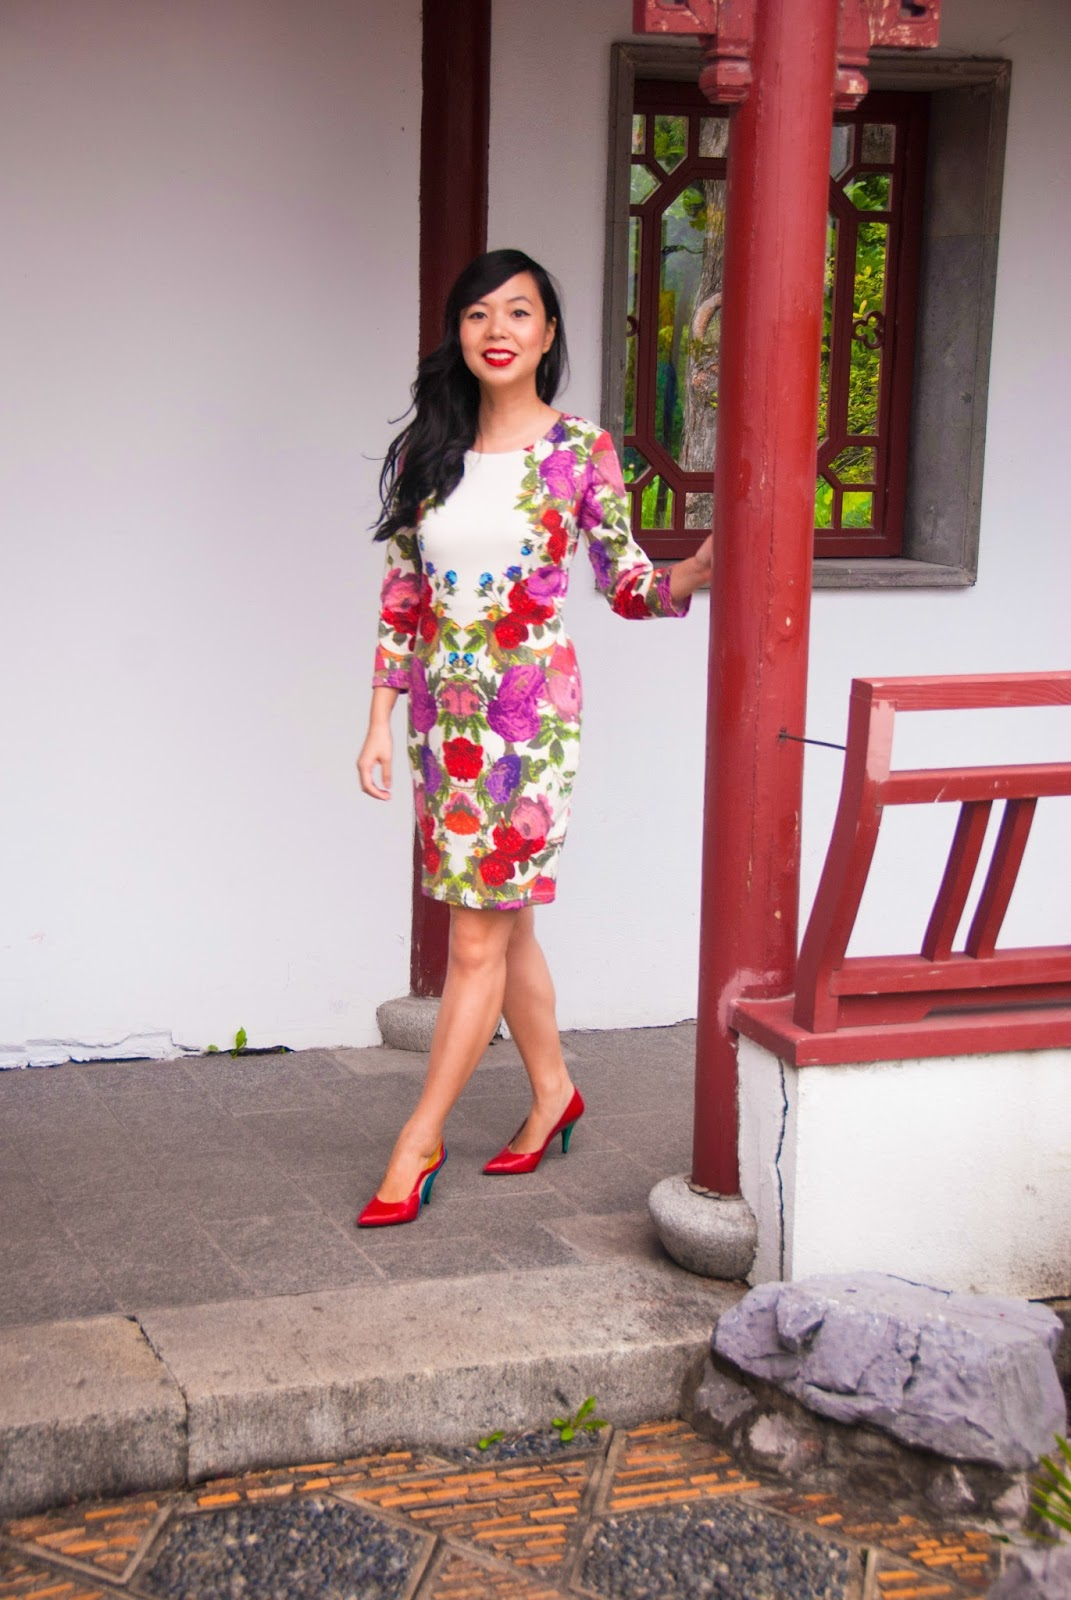 floral garden dress cutout backless colorblock heels pumps red lips